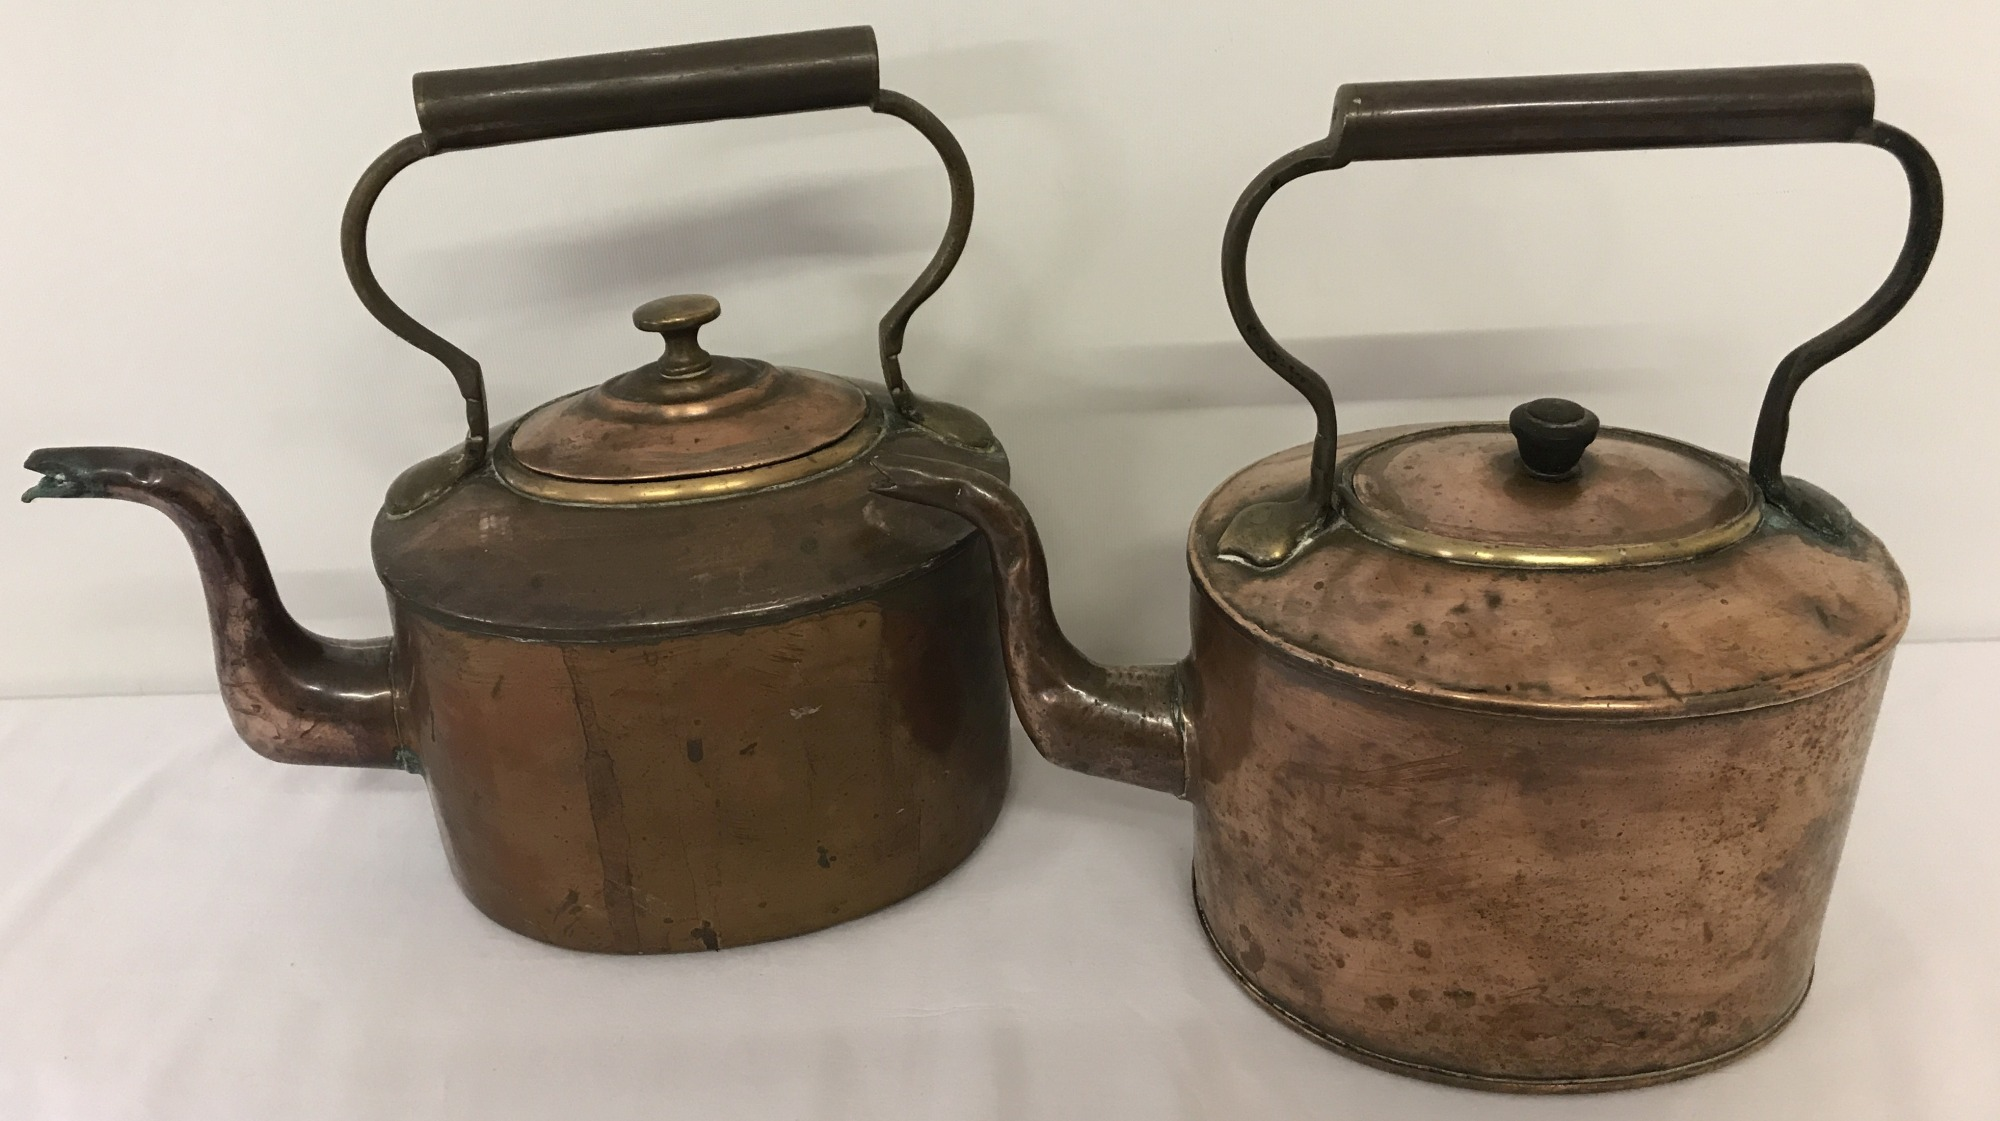 2 vintage oval shaped copper kettles with metal handles.